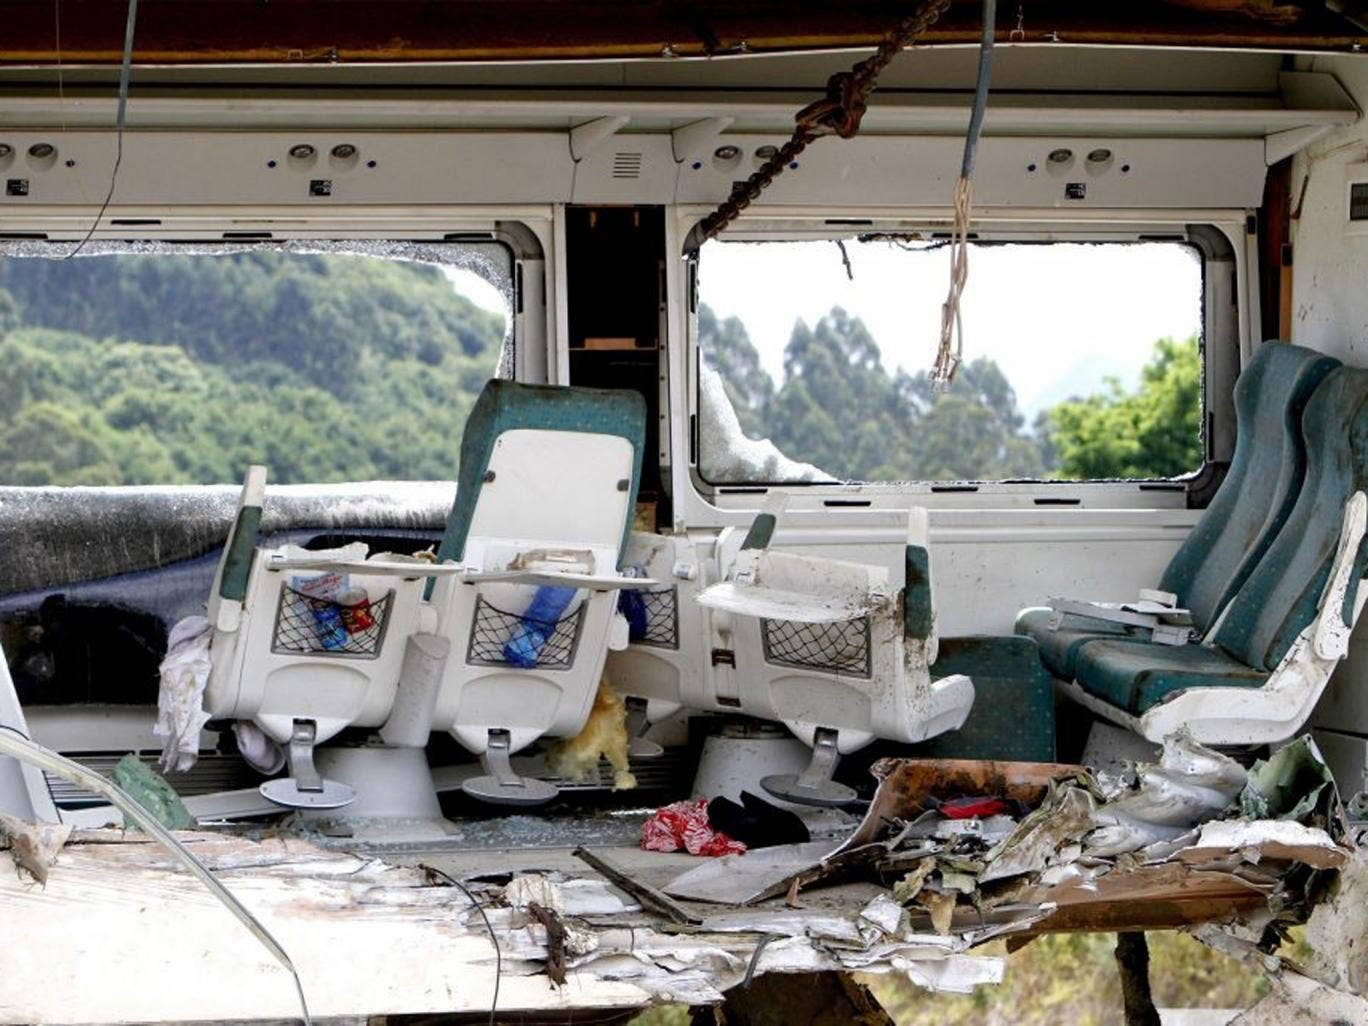 The interior of one of the passenger cars of the train accident in Santiago de Compostela